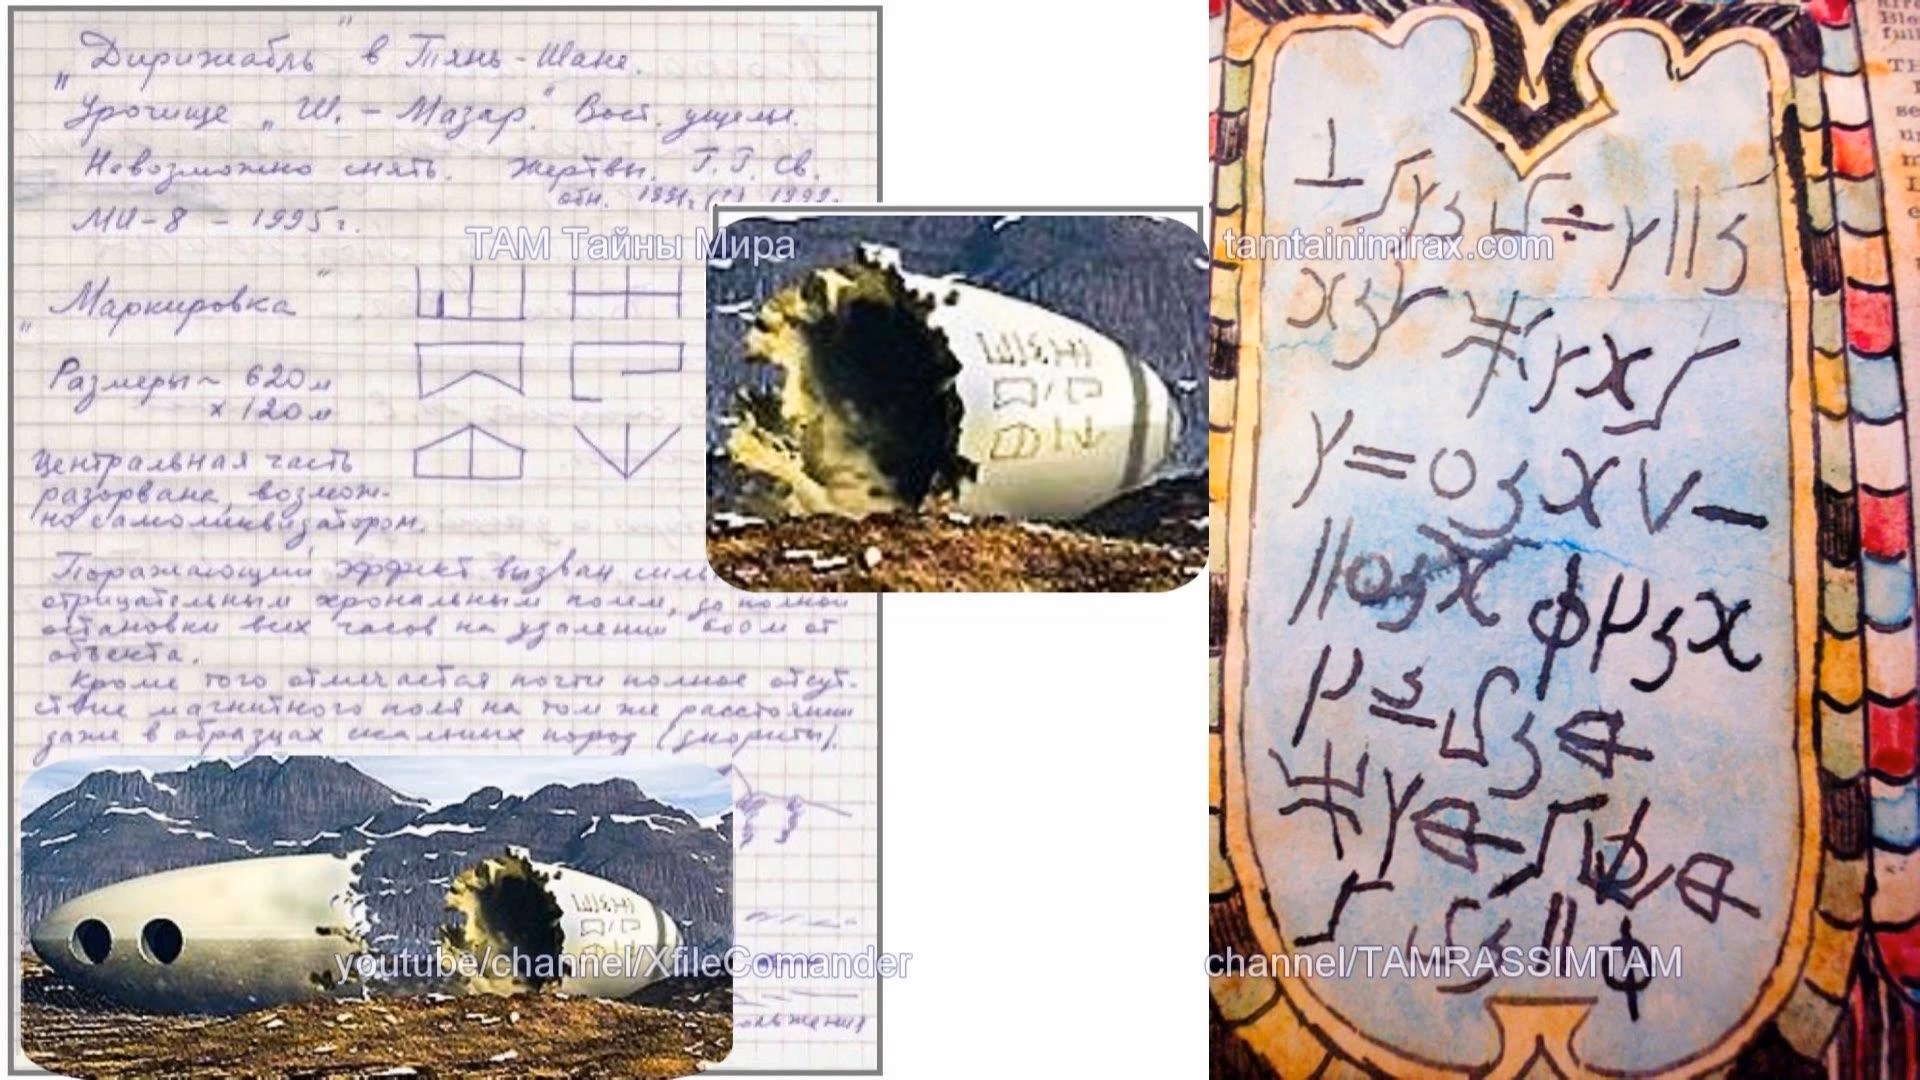 Comparison of the inscriptions on the crashed UFO of Kyrgyzstan of an ancient writing